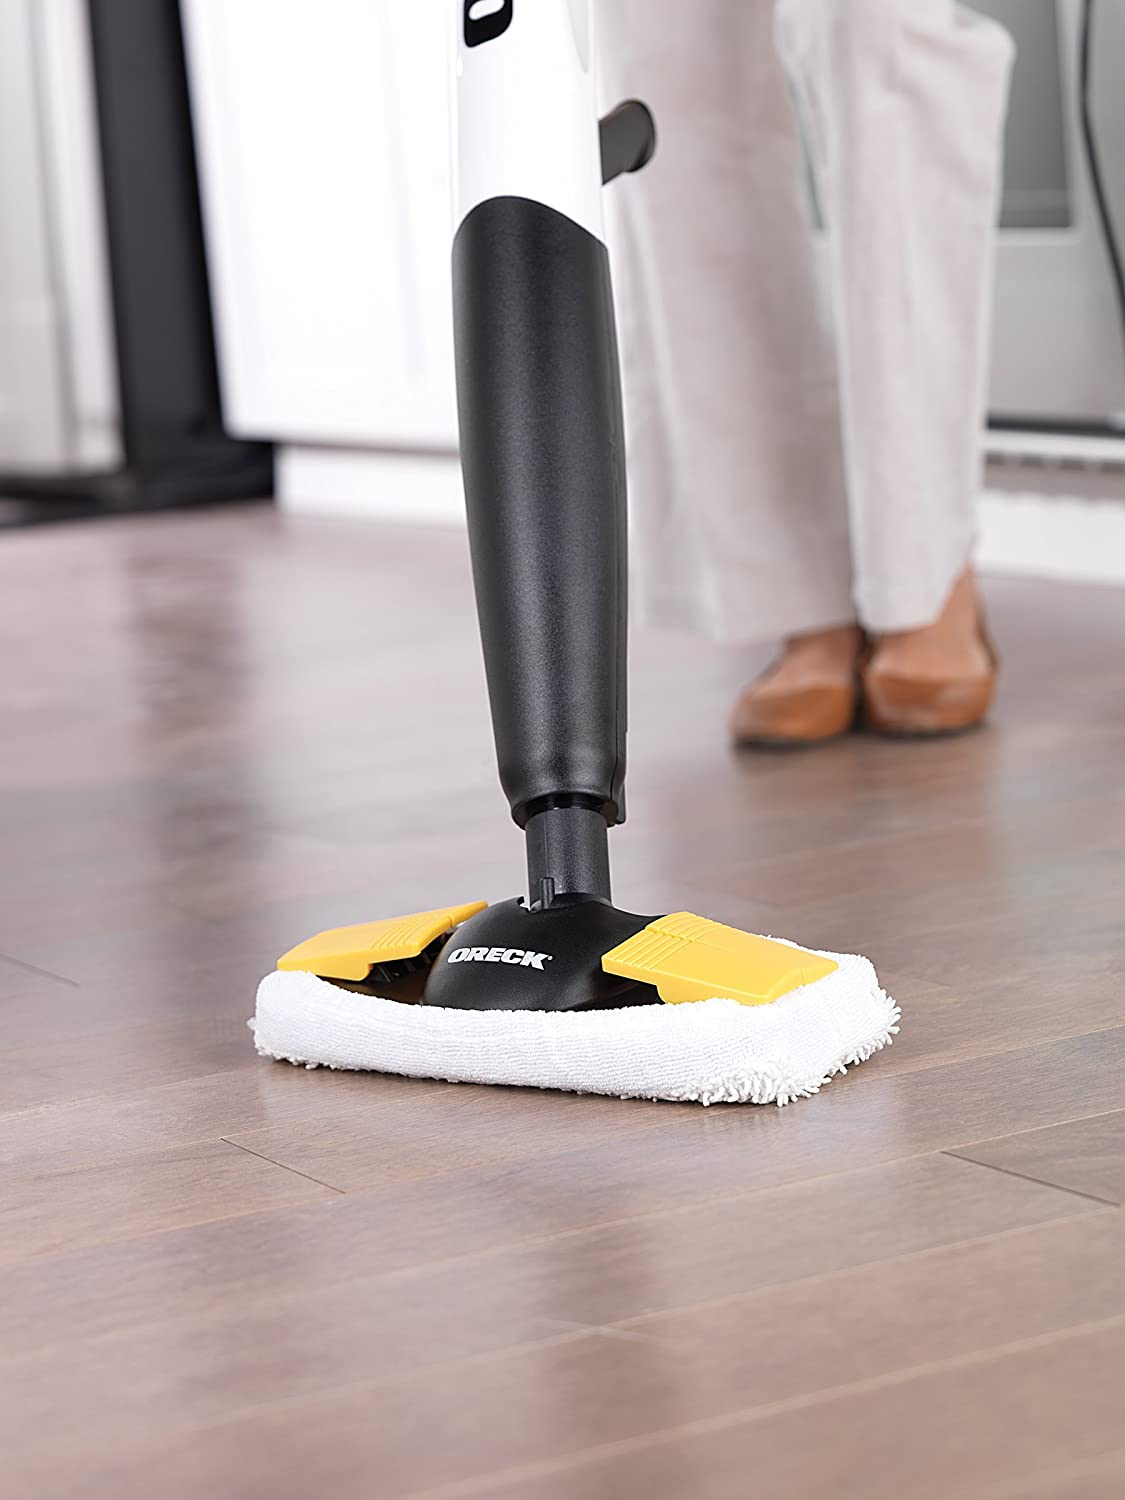 Kitchen Floor Mop Amazoncom Oreck Steam It Steam Mop Steam100lrh Floor Cleaners